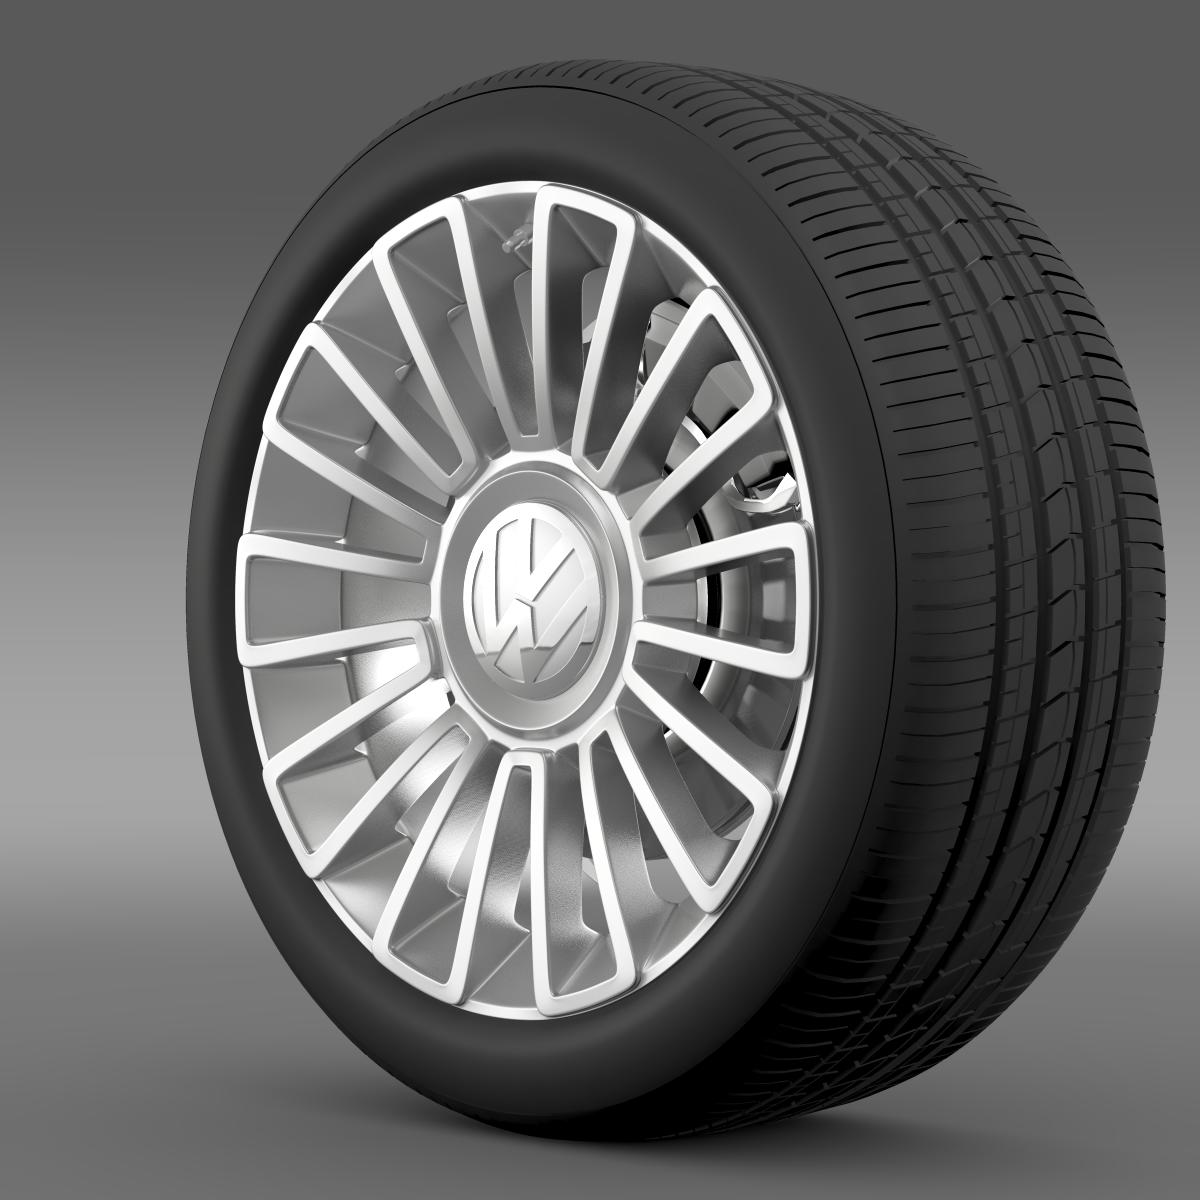 volkswagen up wheel 3d model 3ds max fbx c4d lwo ma mb hrc xsi obj 210883